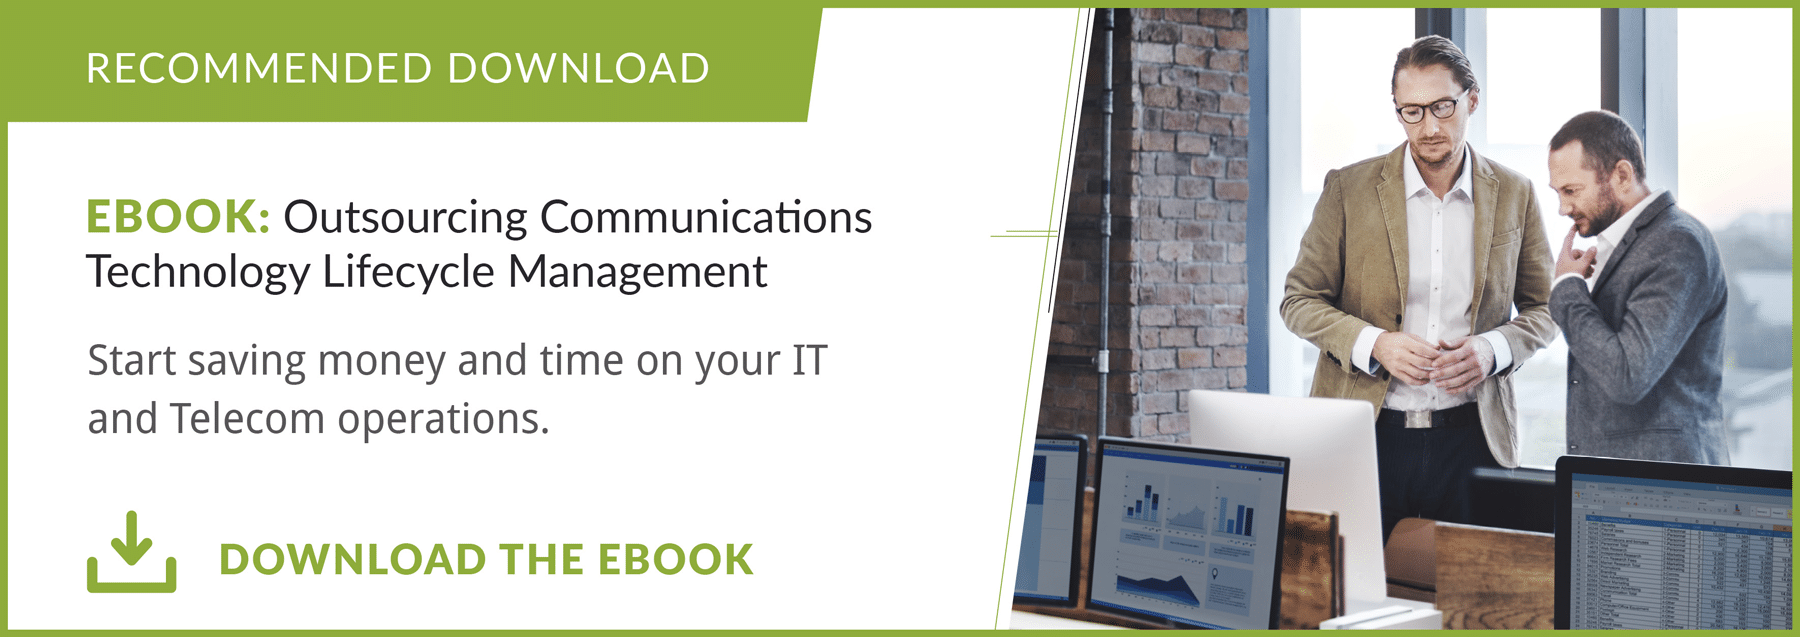 eBook: Outsourcing Communications Technology Lifecycle Management